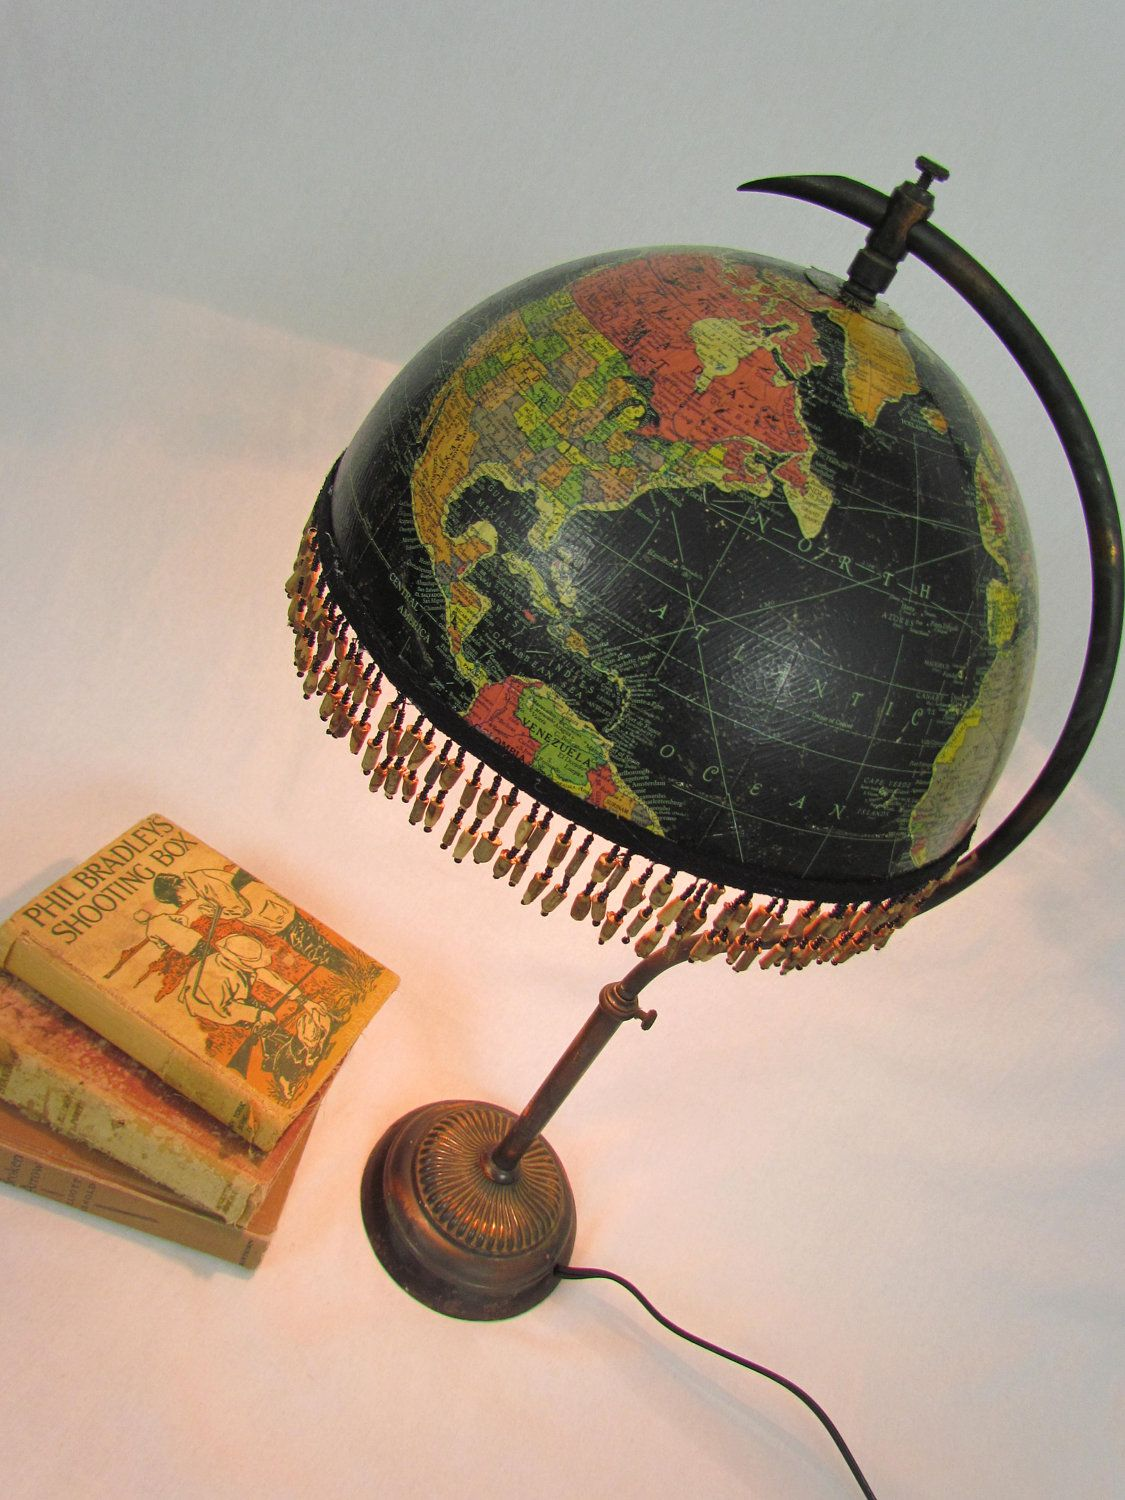 Upcycle an old globe into a lamp shade. Great idea!